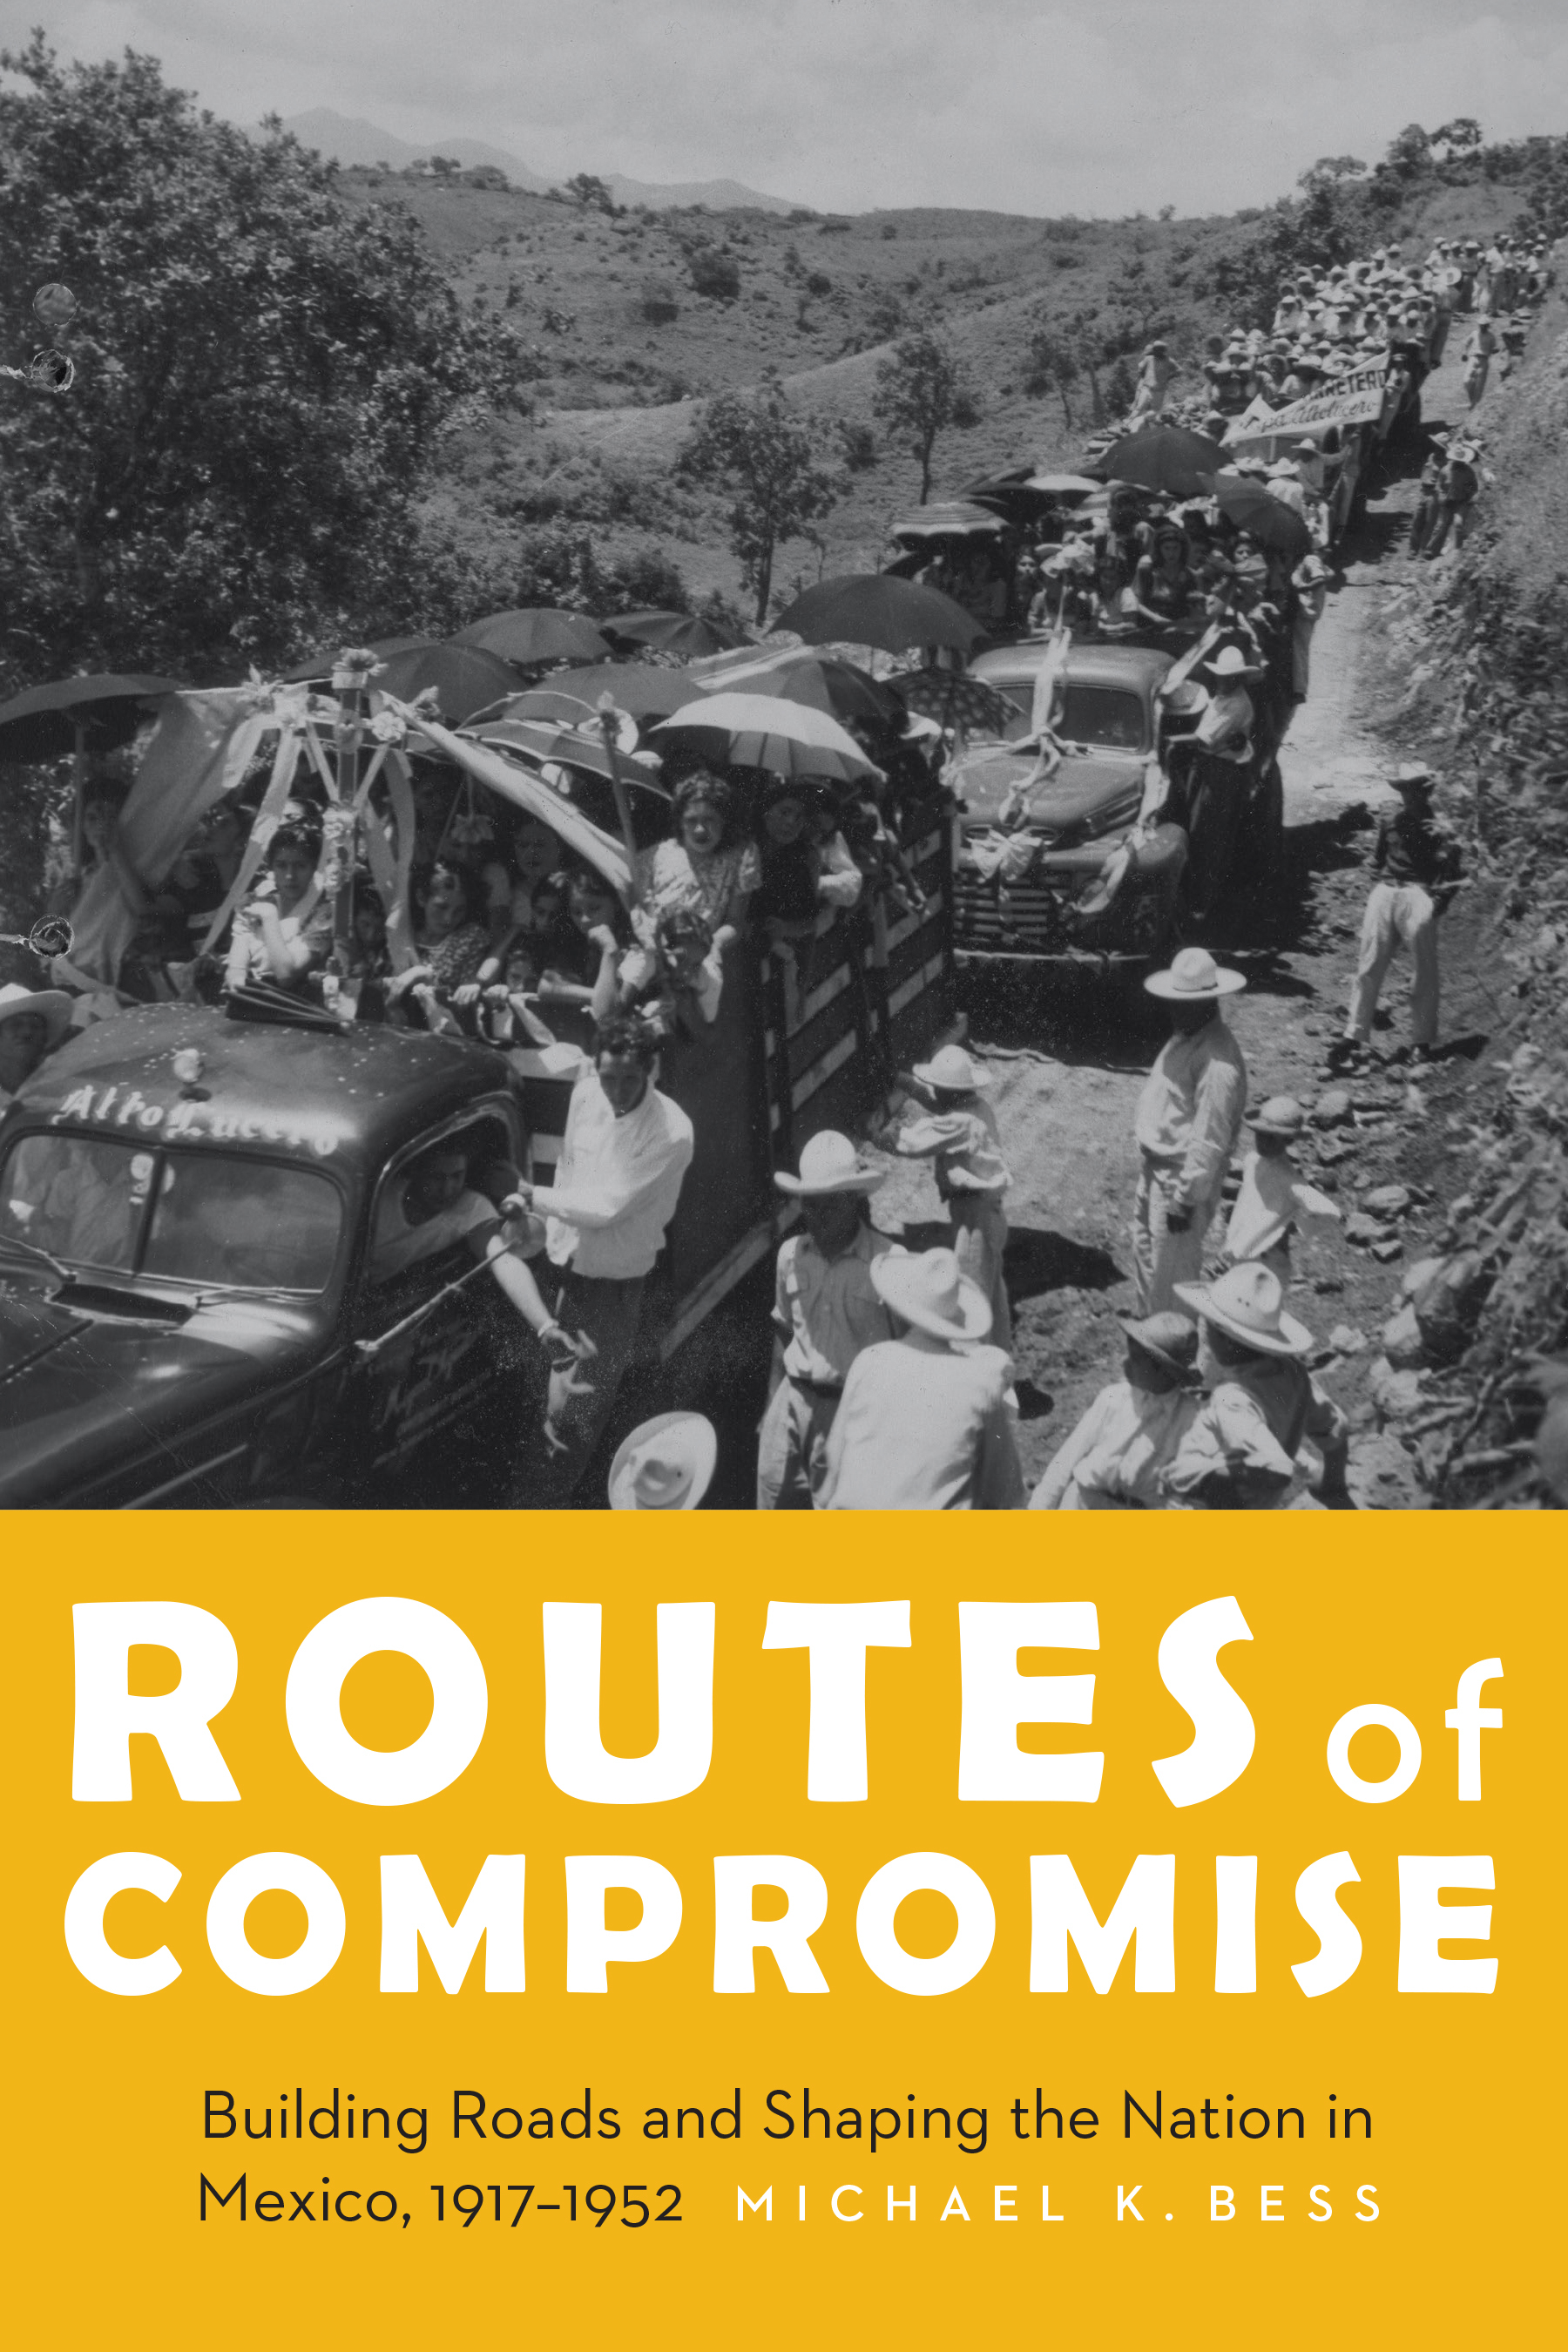 Routes of Compromise Building Roads and Shaping the Nation in Mexico, 1917-1952